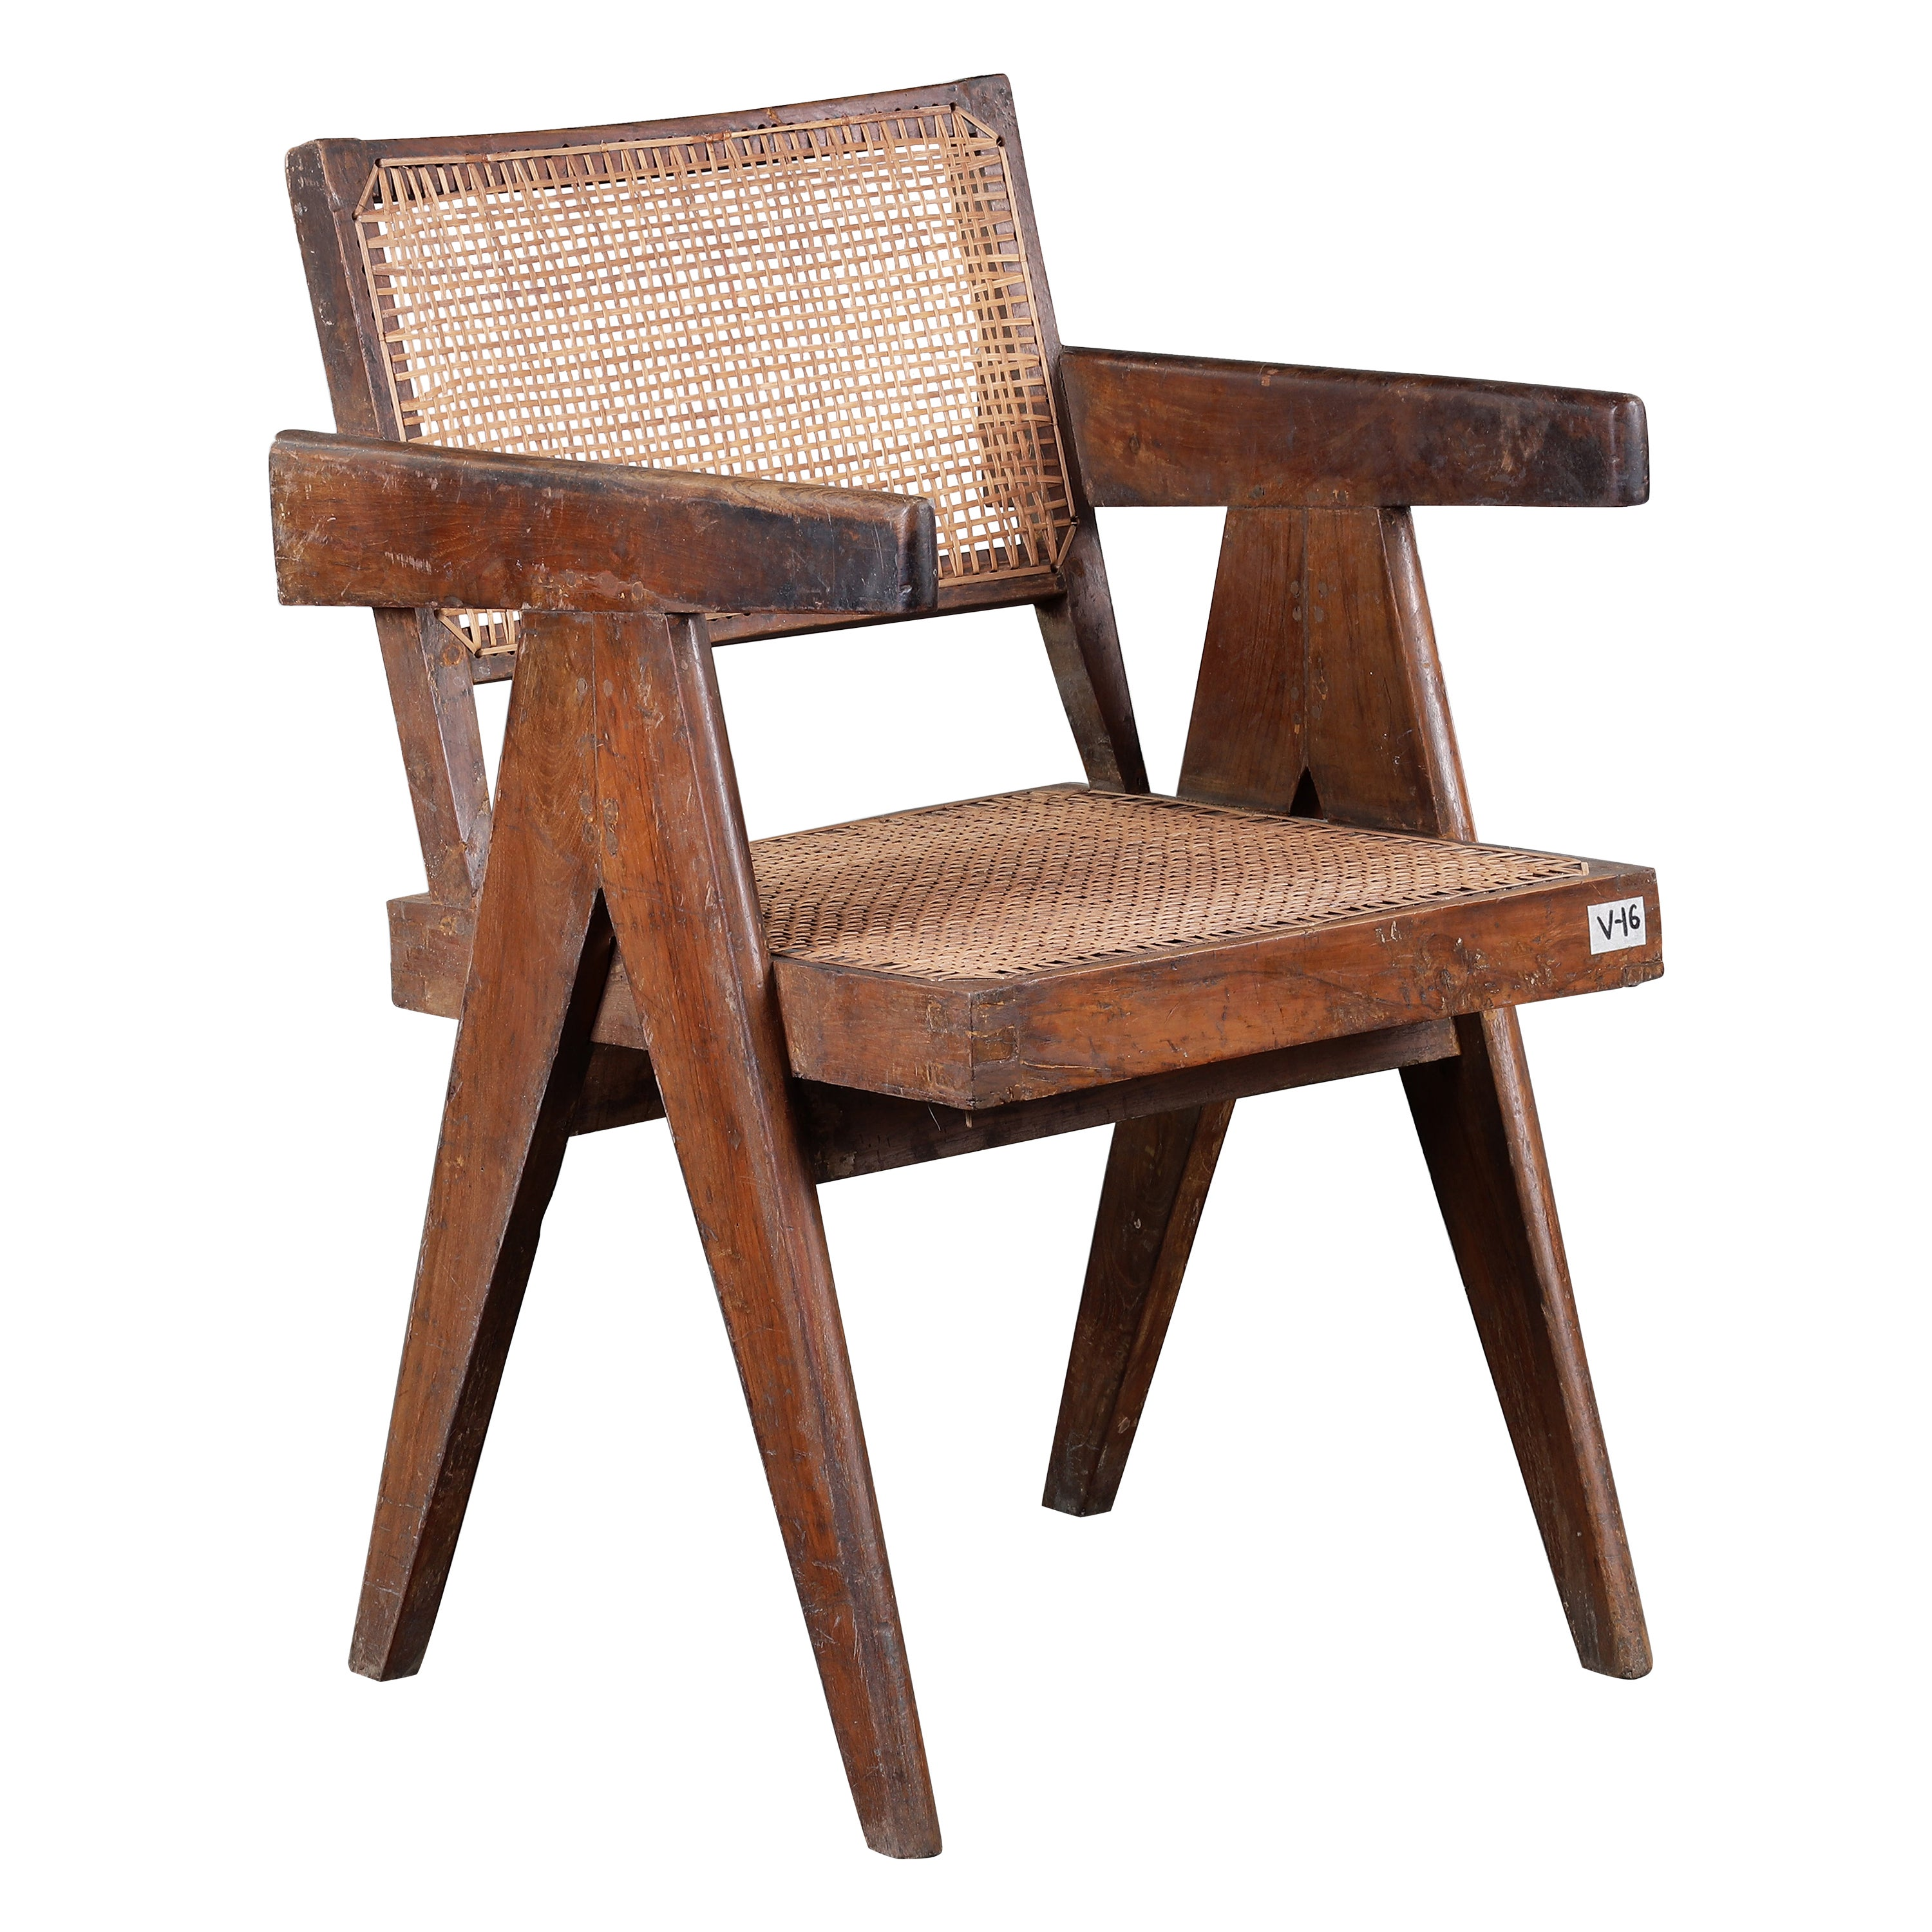 Pierre Jeanneret Office Cane Chair | Authentic Mid-Century Modern PJ-SI-28-B